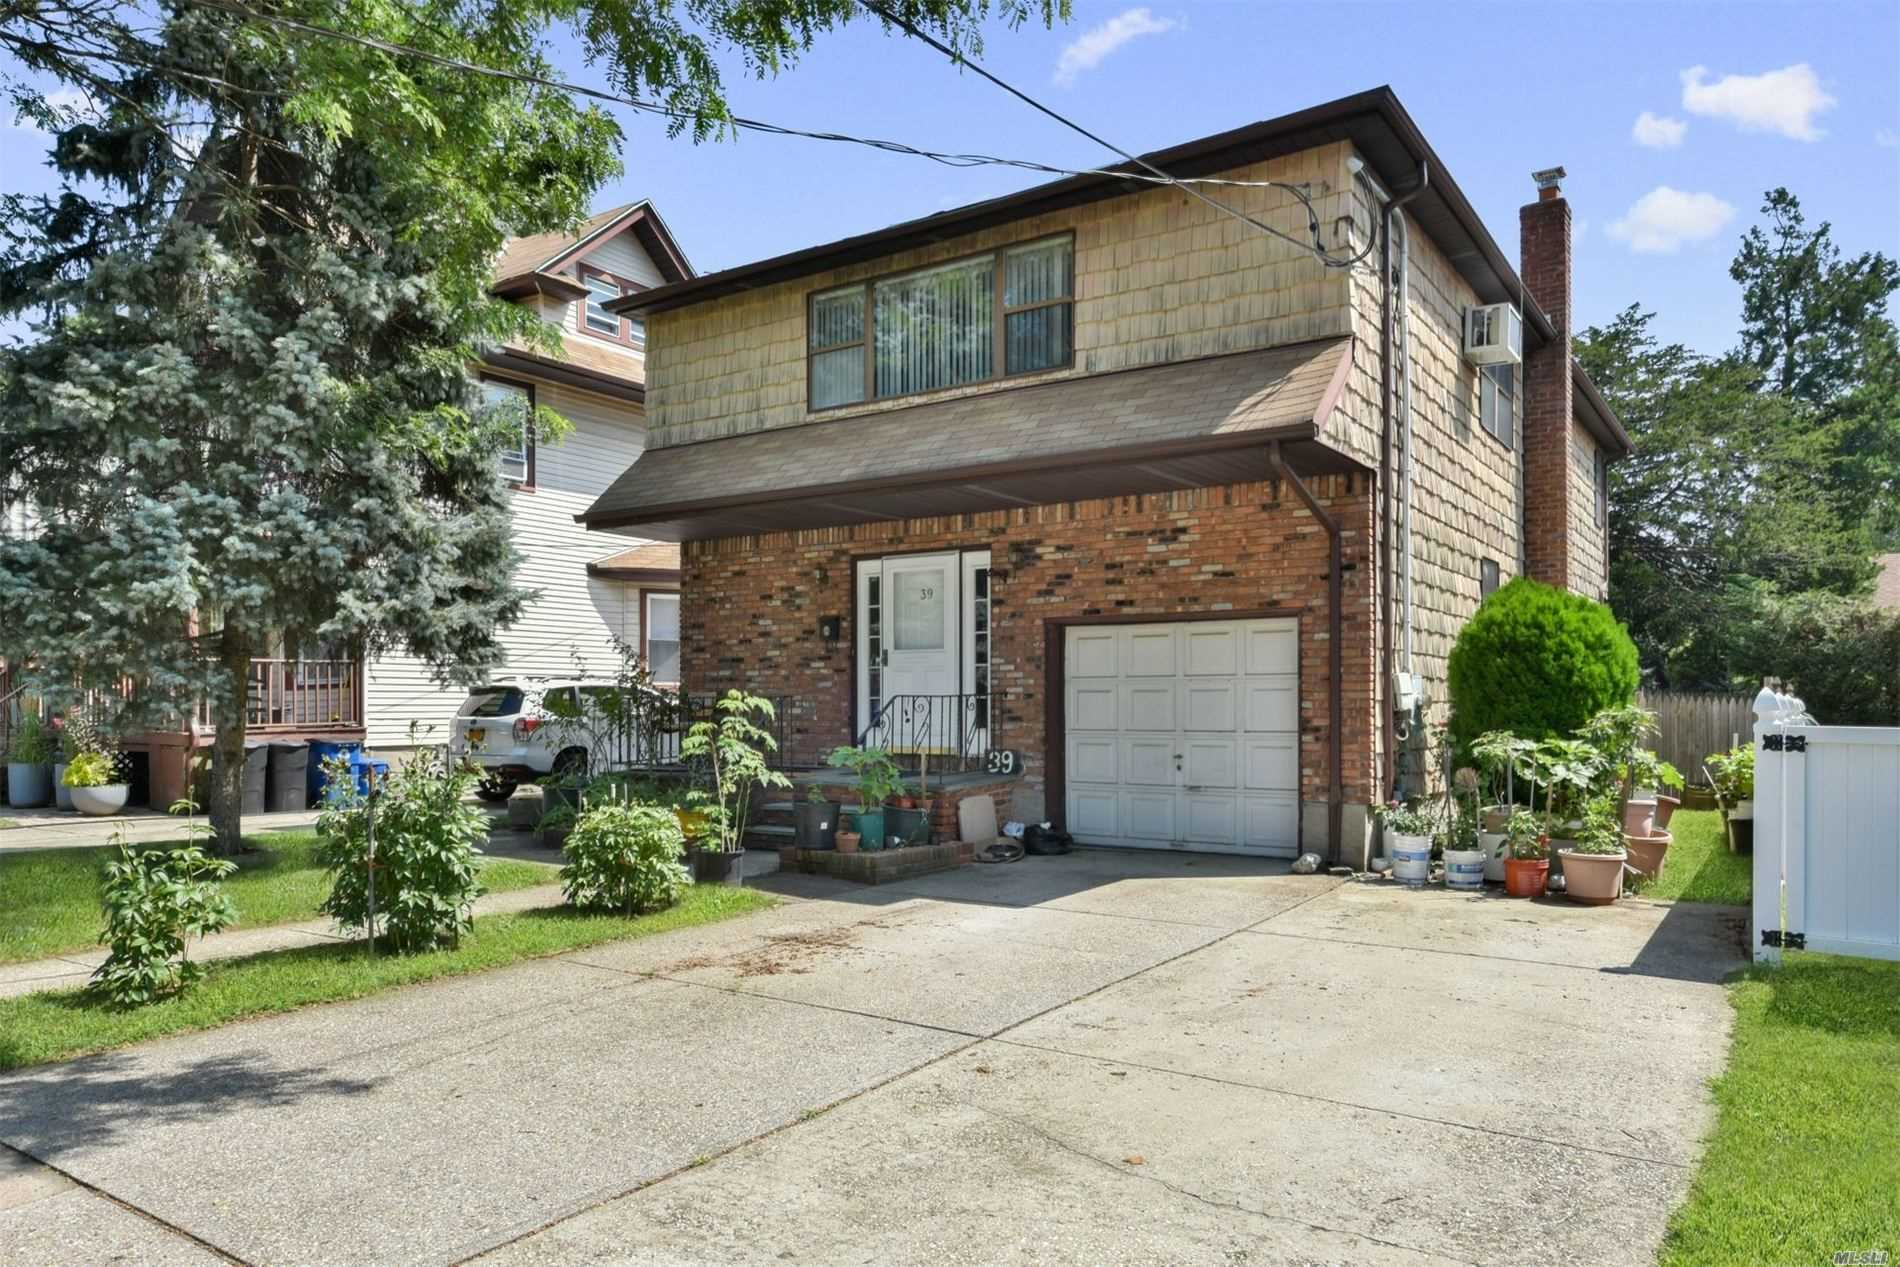 Property for sale at 39 Irving Ave, Floral Park,  New York 11001